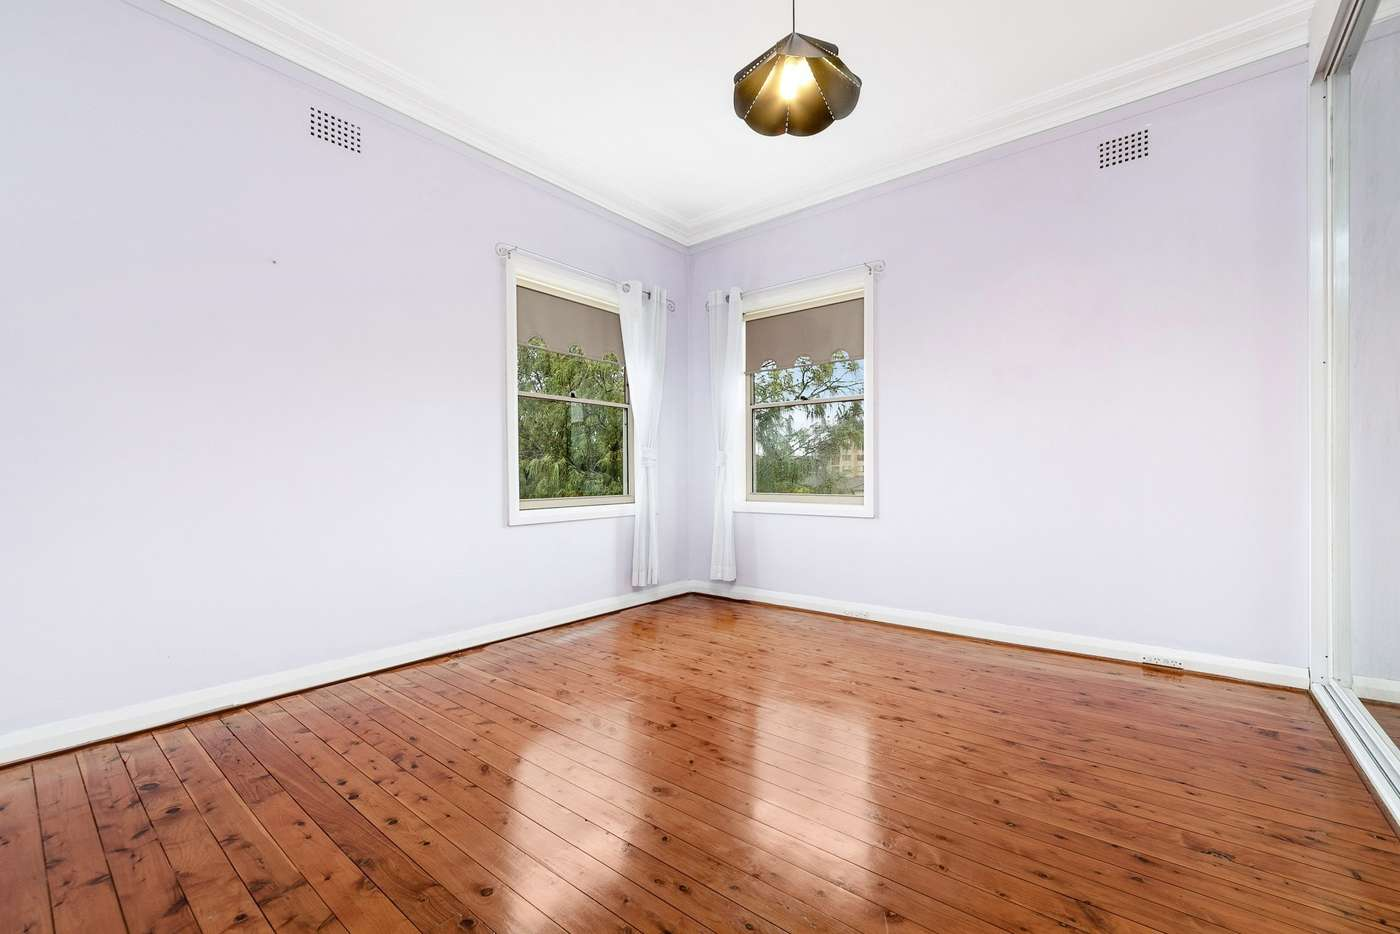 Main view of Homely apartment listing, 11/770 Anzac Parade, Maroubra NSW 2035